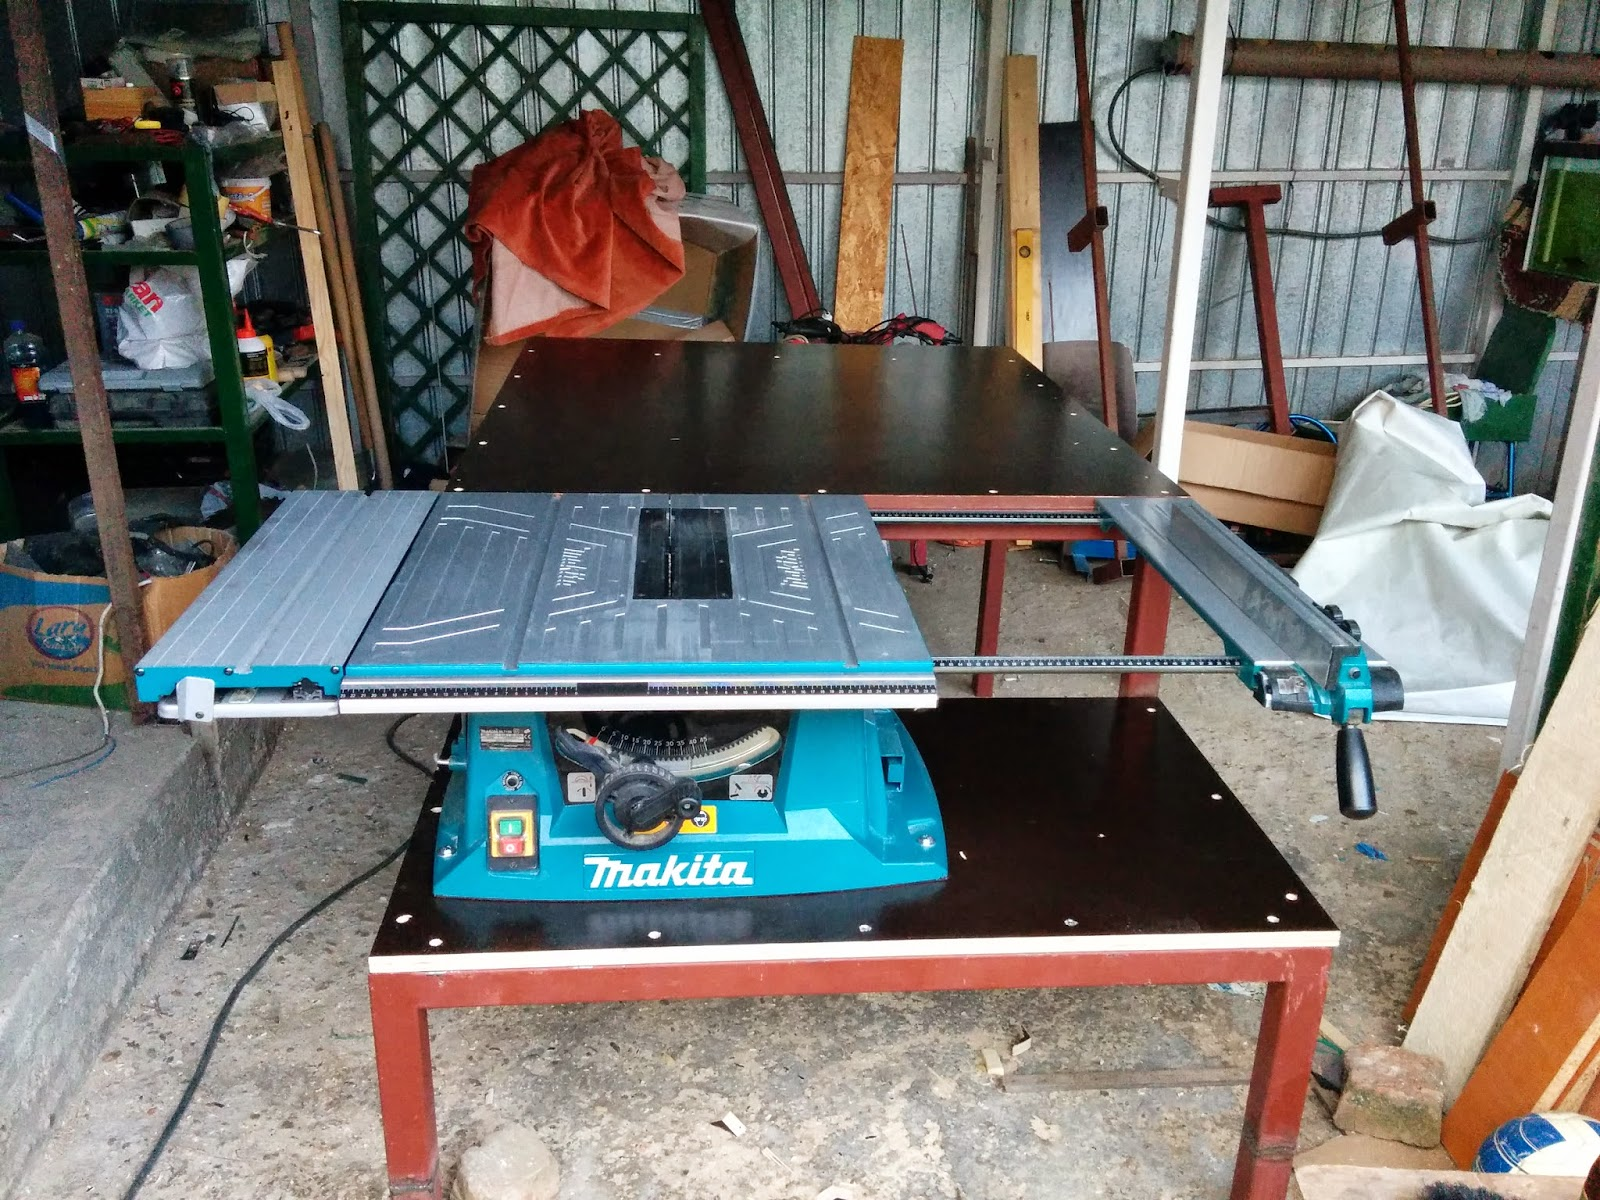 The Features That I Wanted To Keep From The Saw Are:   Sliding Table   To  Be Able To Extend The Table Saw Top. So Because I Wanted To Keep Those  Features I ...